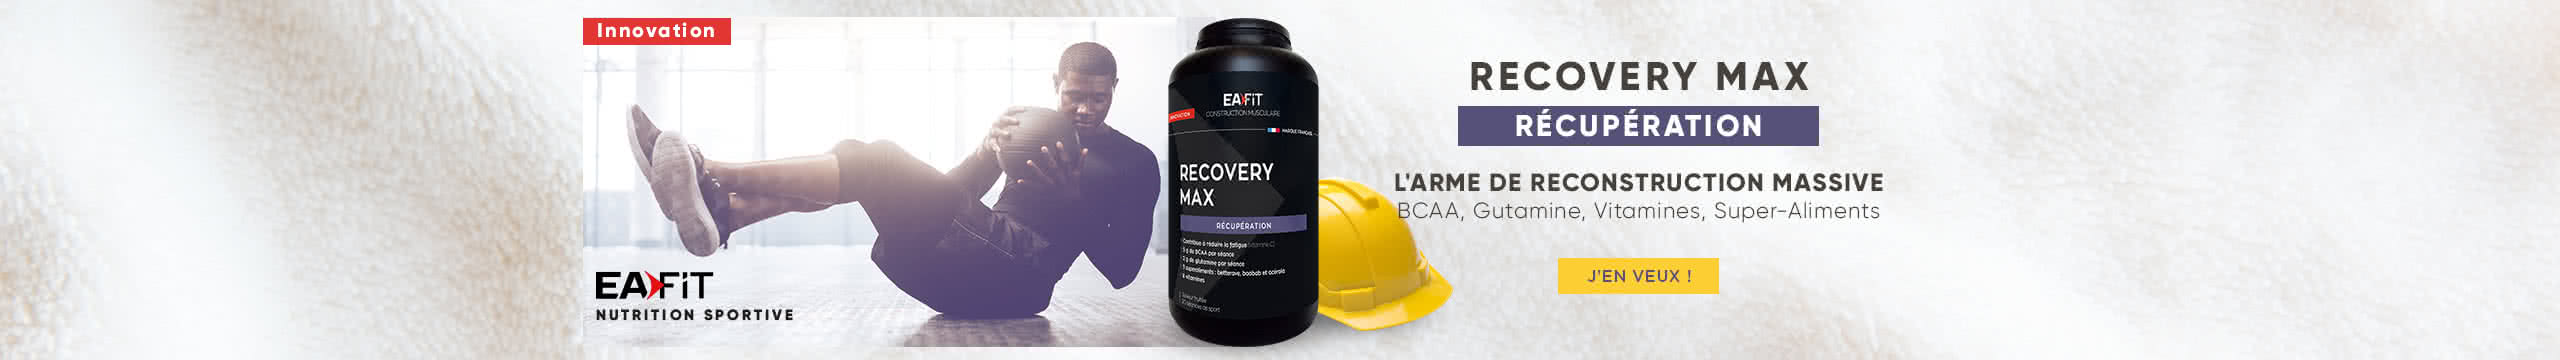 NL-MEA-Recovery-Max